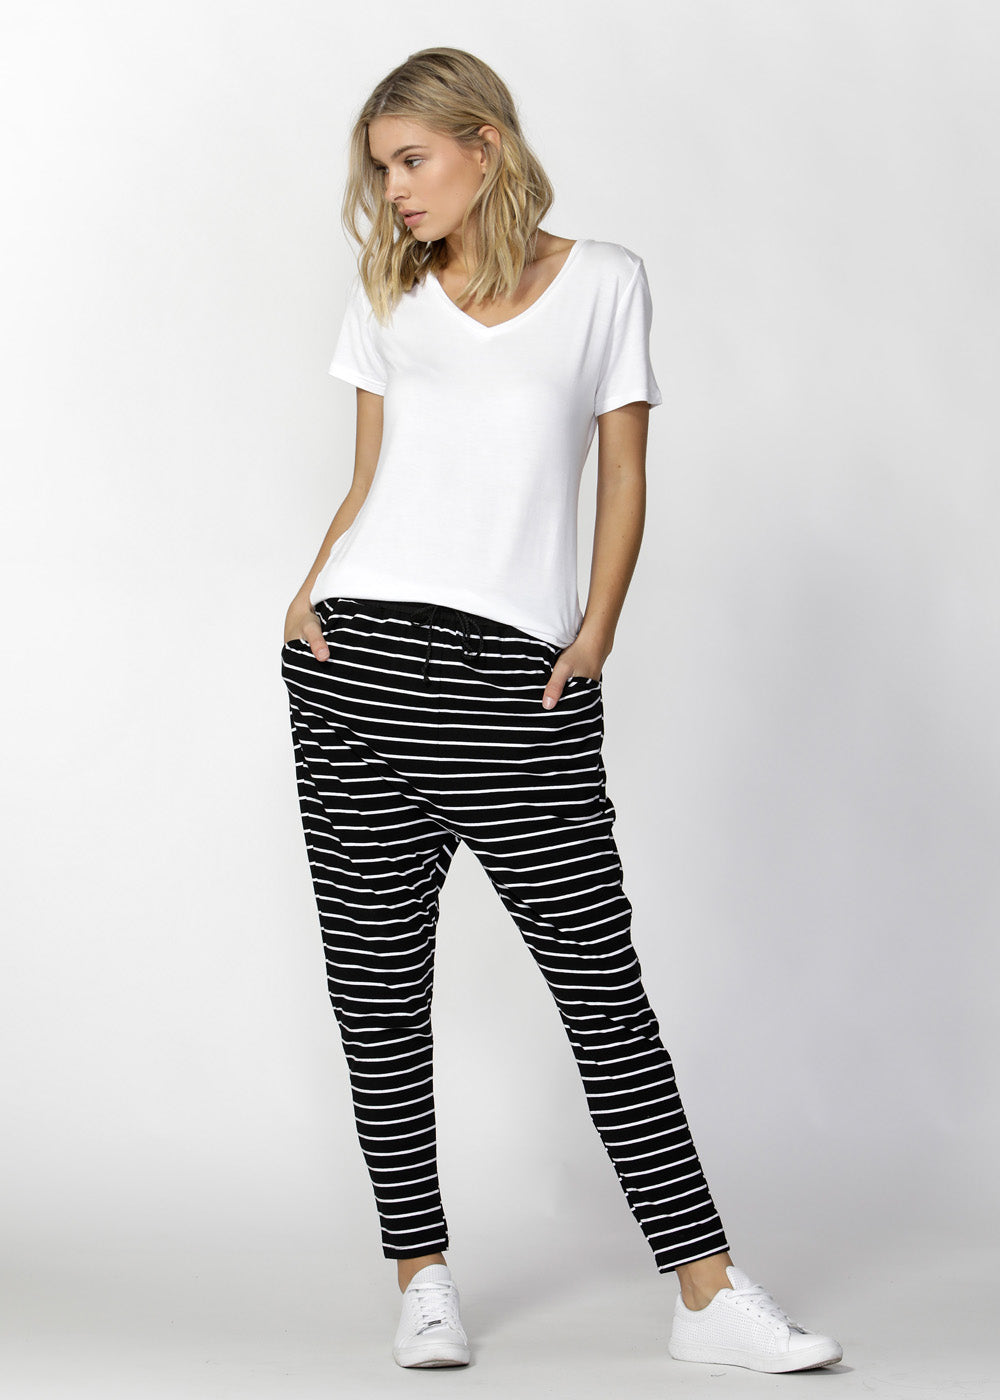 betty basics - jade pant - black/white stripe